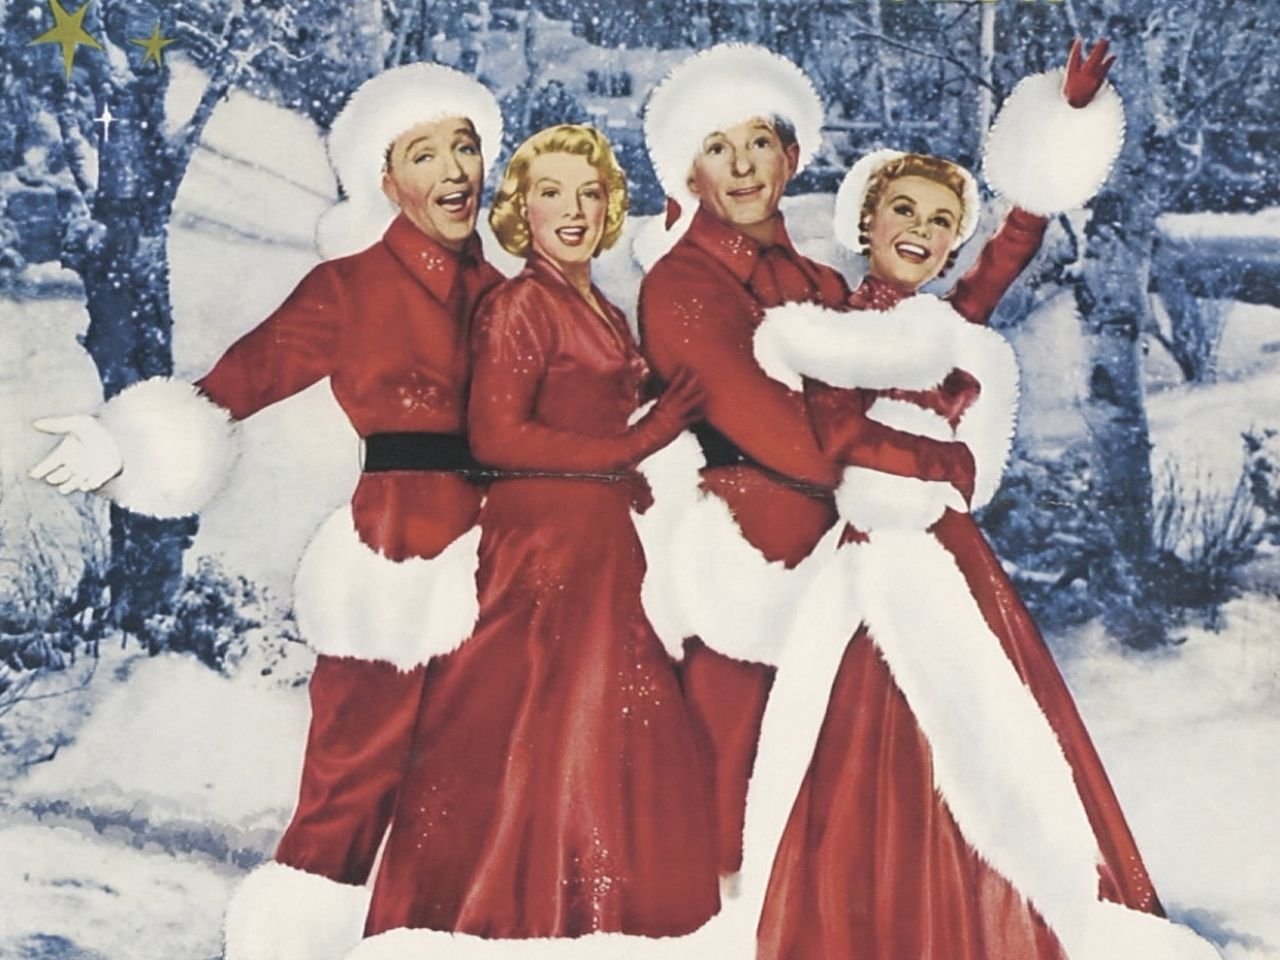 tis the season the ultimate christmas movies musicals cartoons comedies and dramas